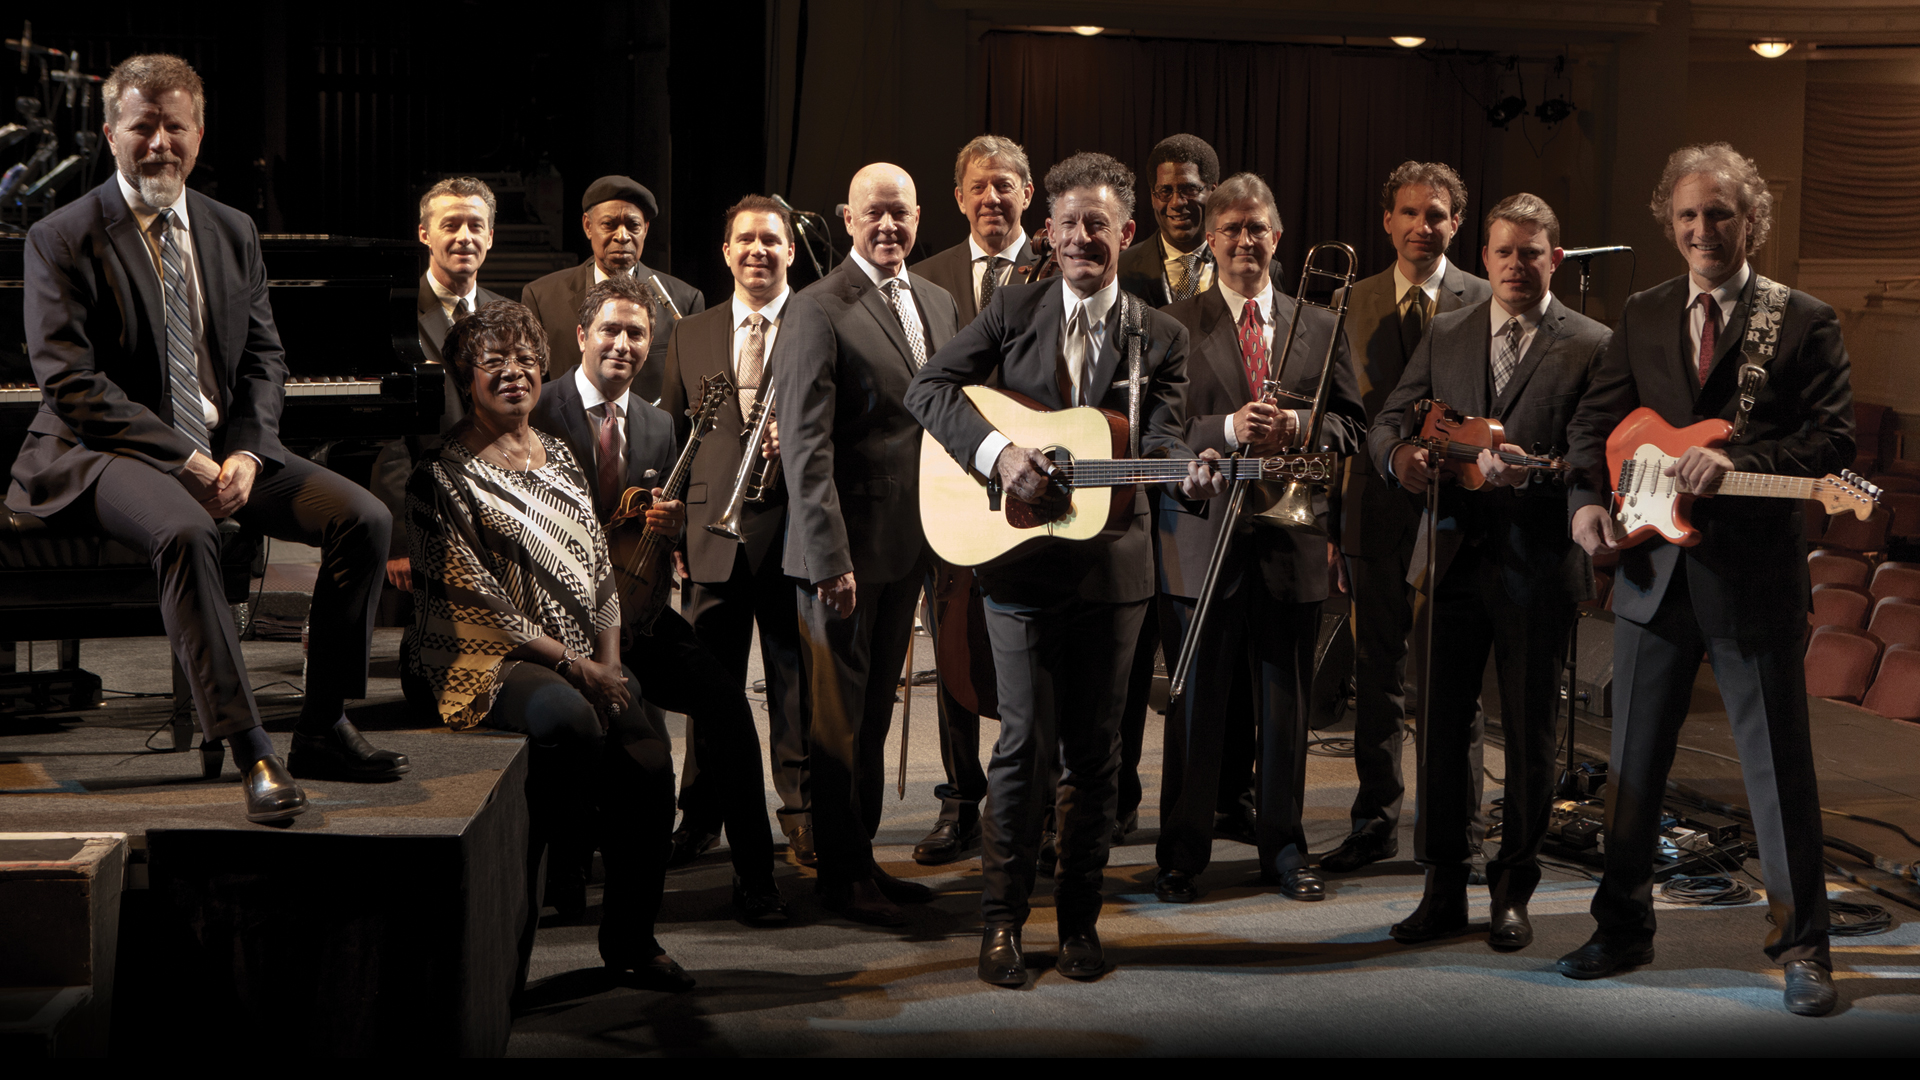 Cox Charities Benefit Concert to feature Lyle Lovett and His Large Band